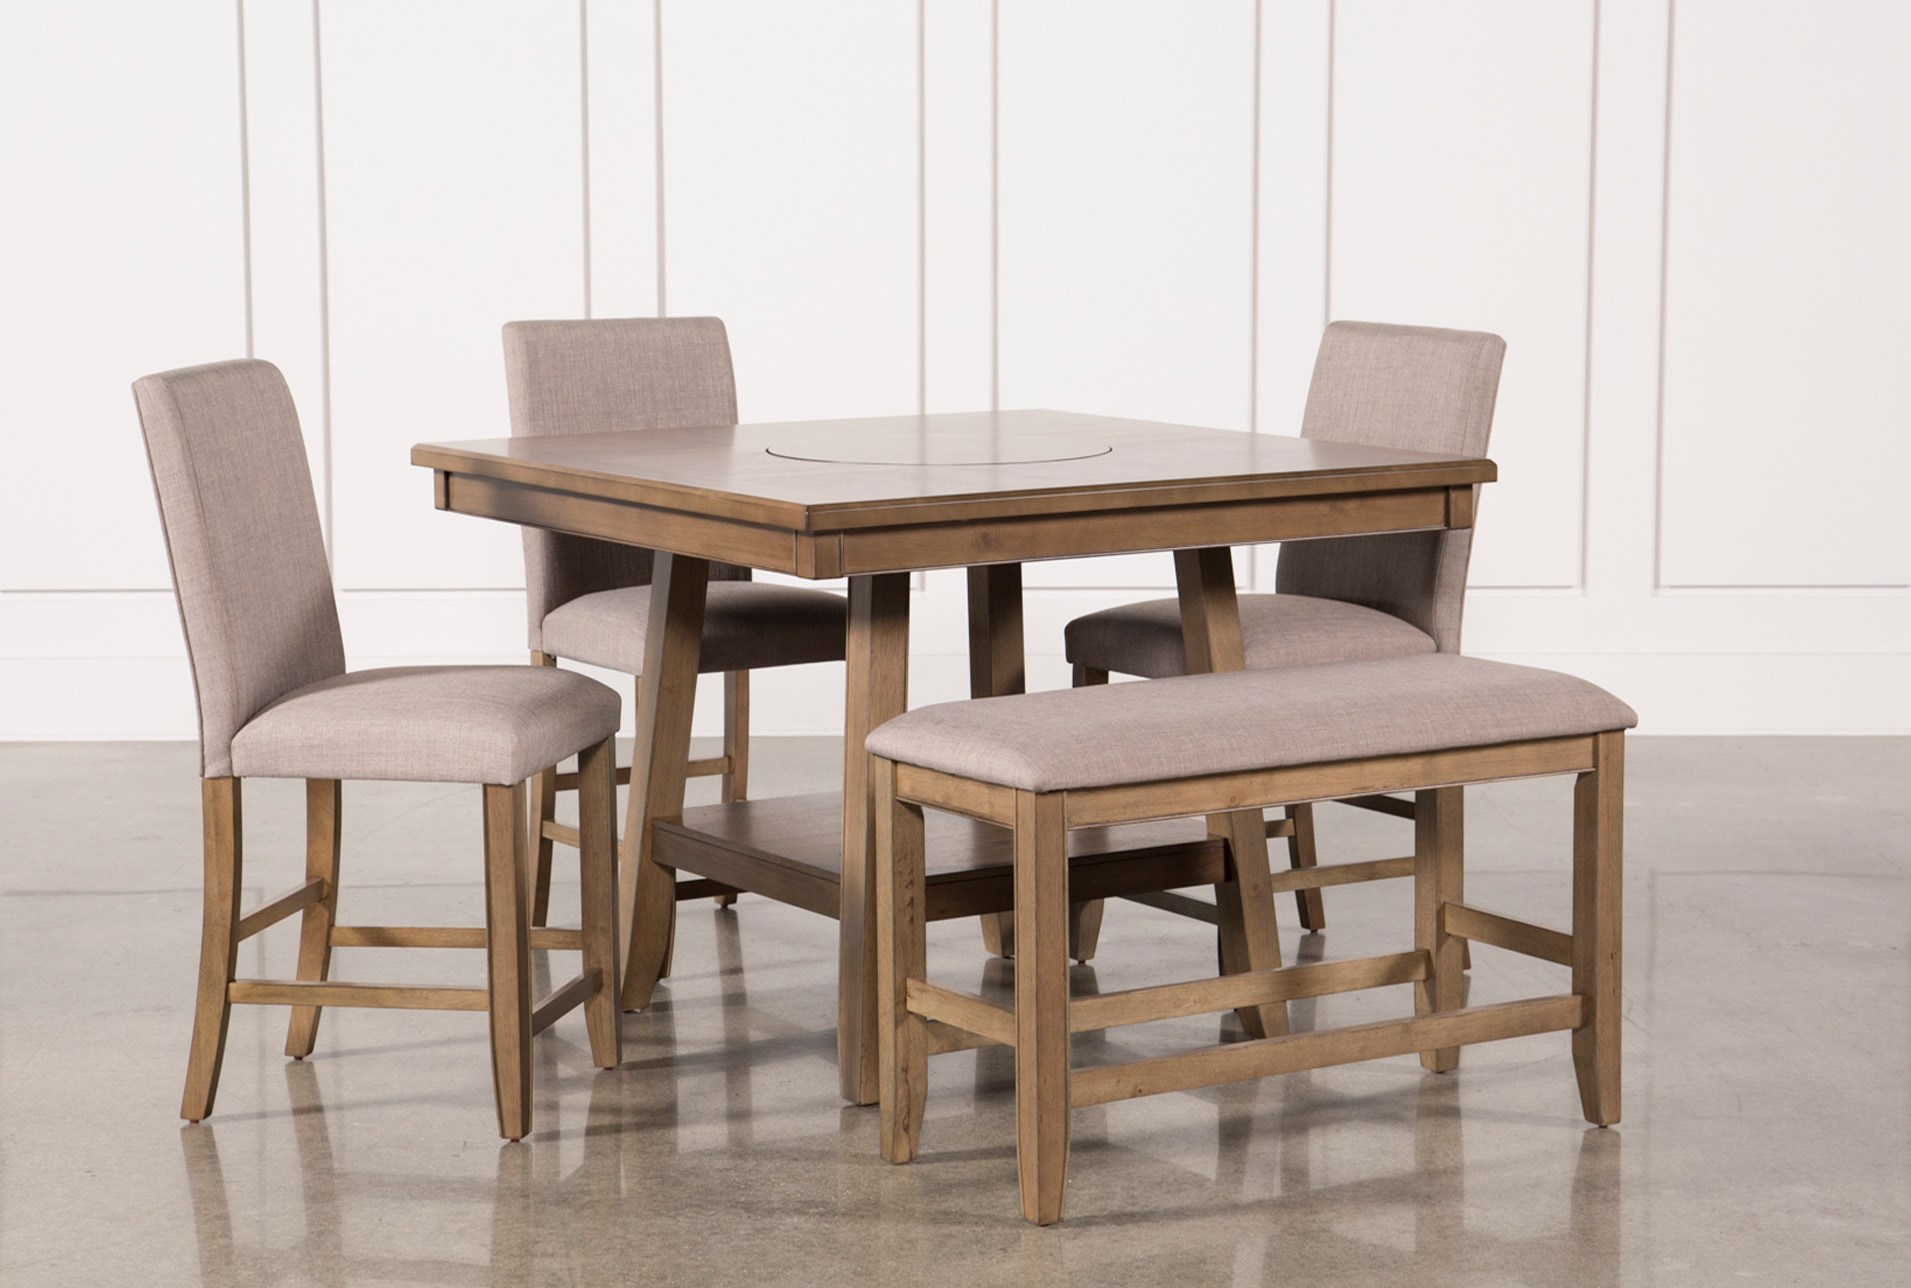 Counter Height Dining Sets for Your Dining Room | Living Spaces